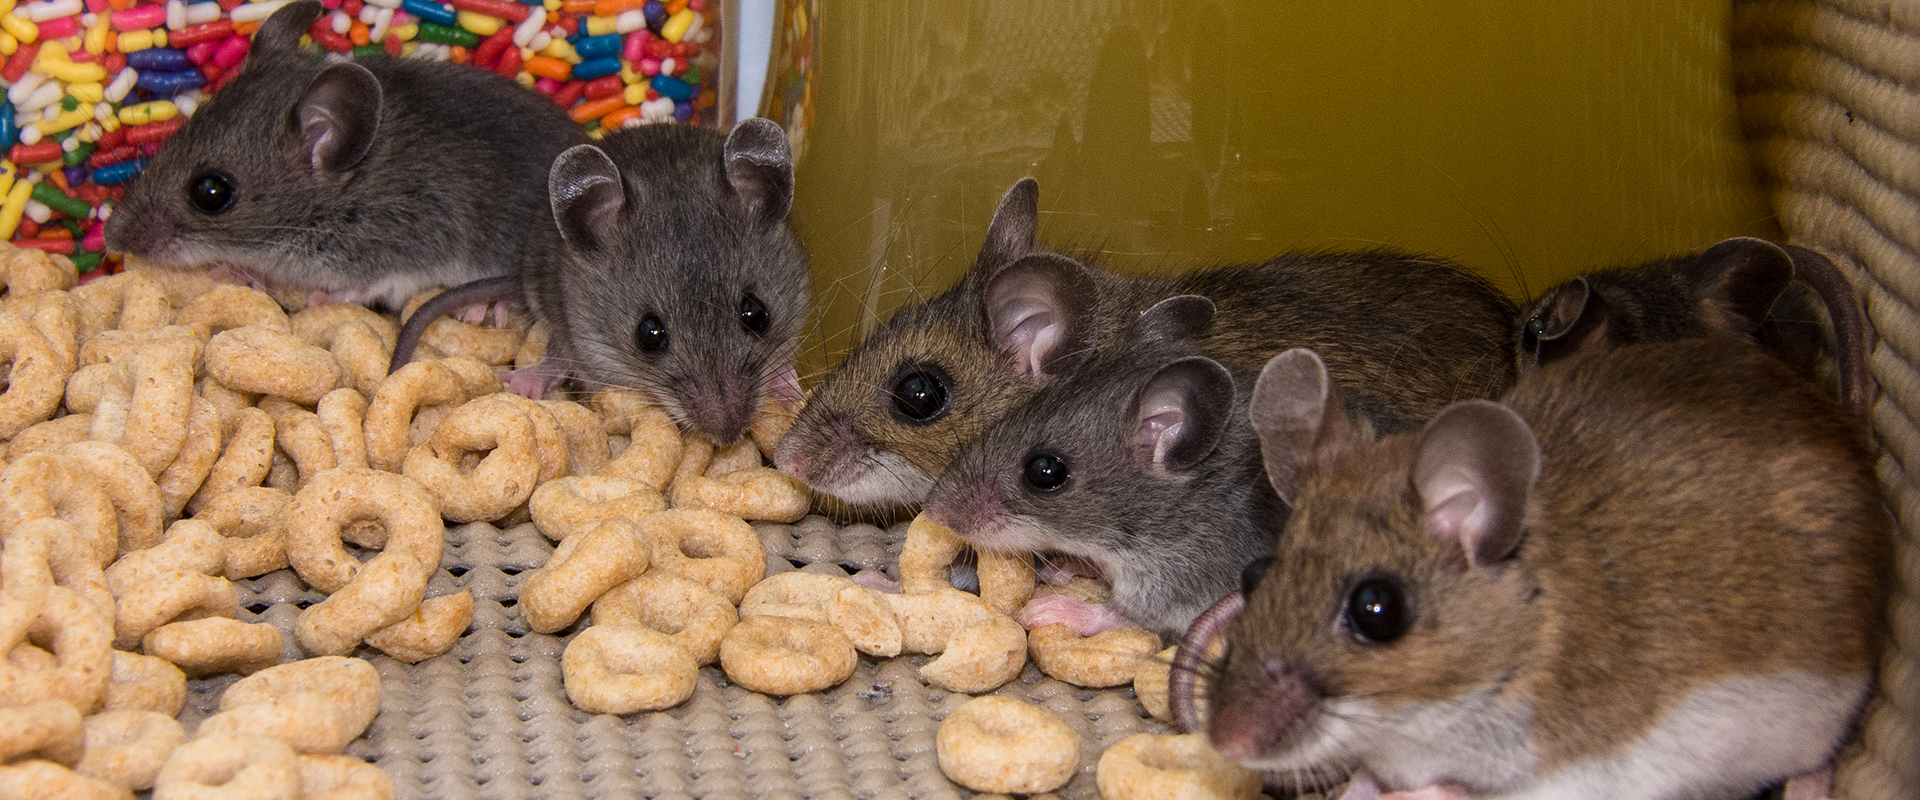 rodents in a pantry in plano texas